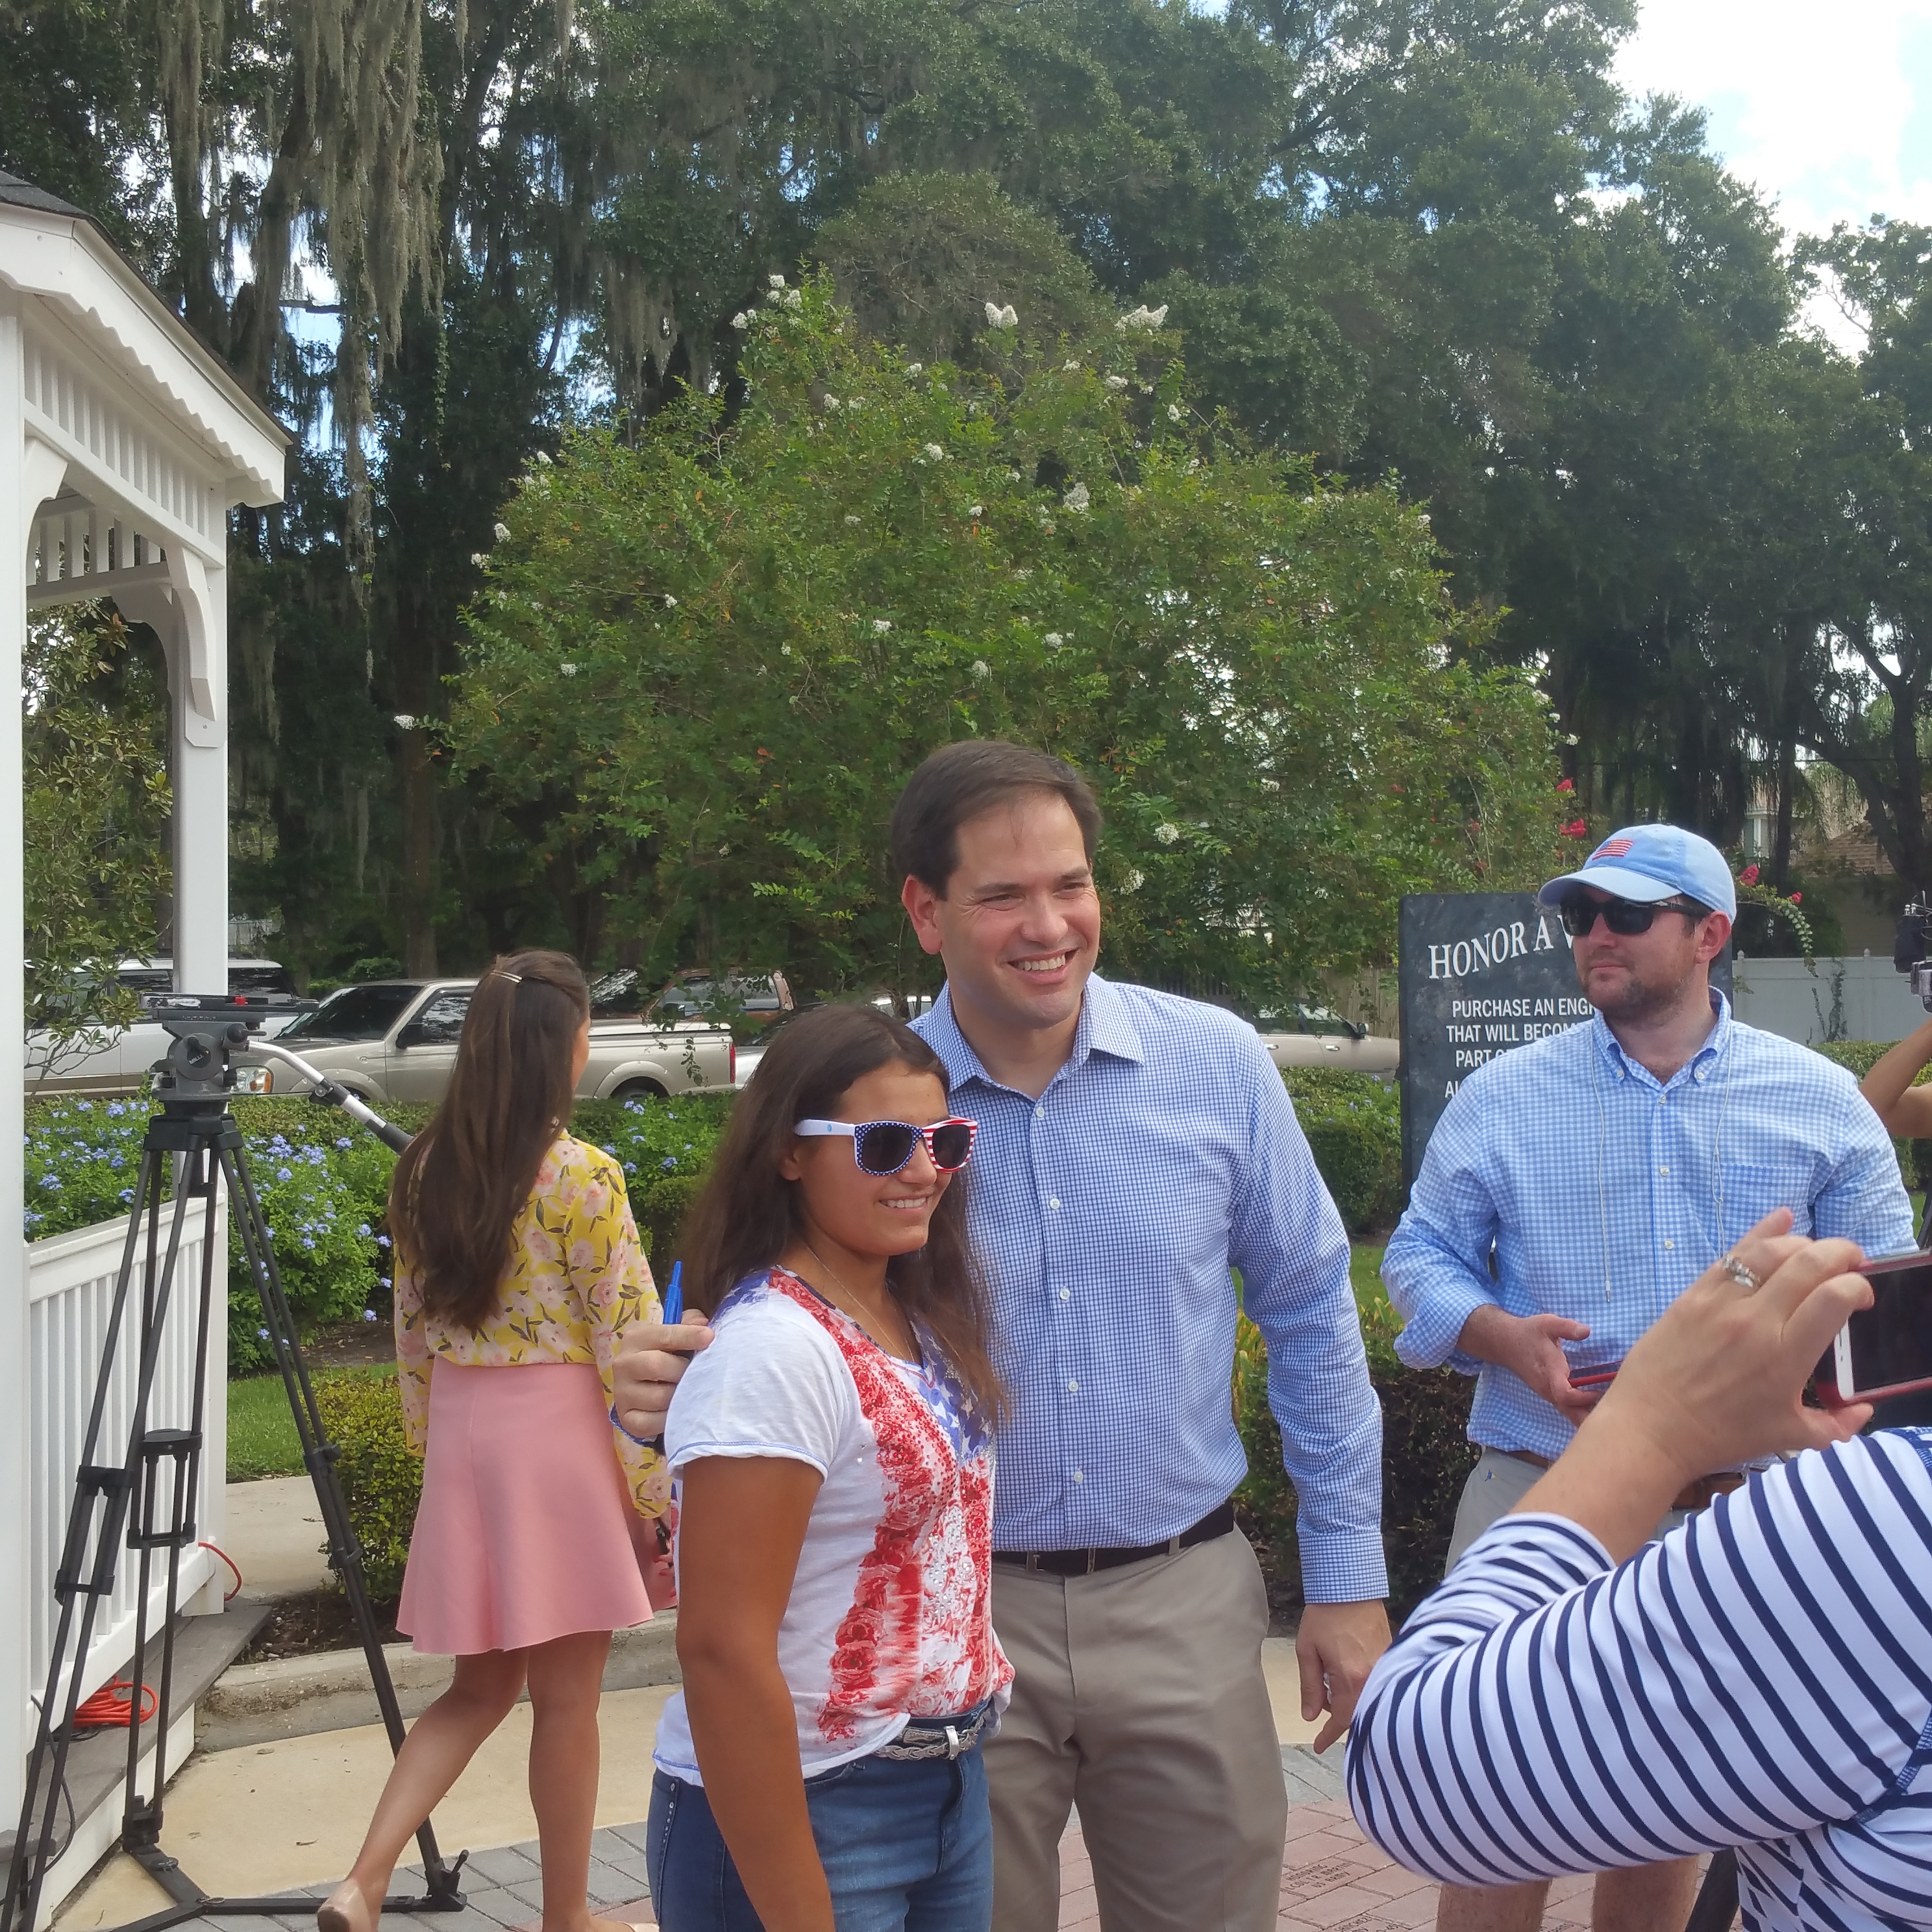 Rubio spent time taking pictures and connecting with supporters